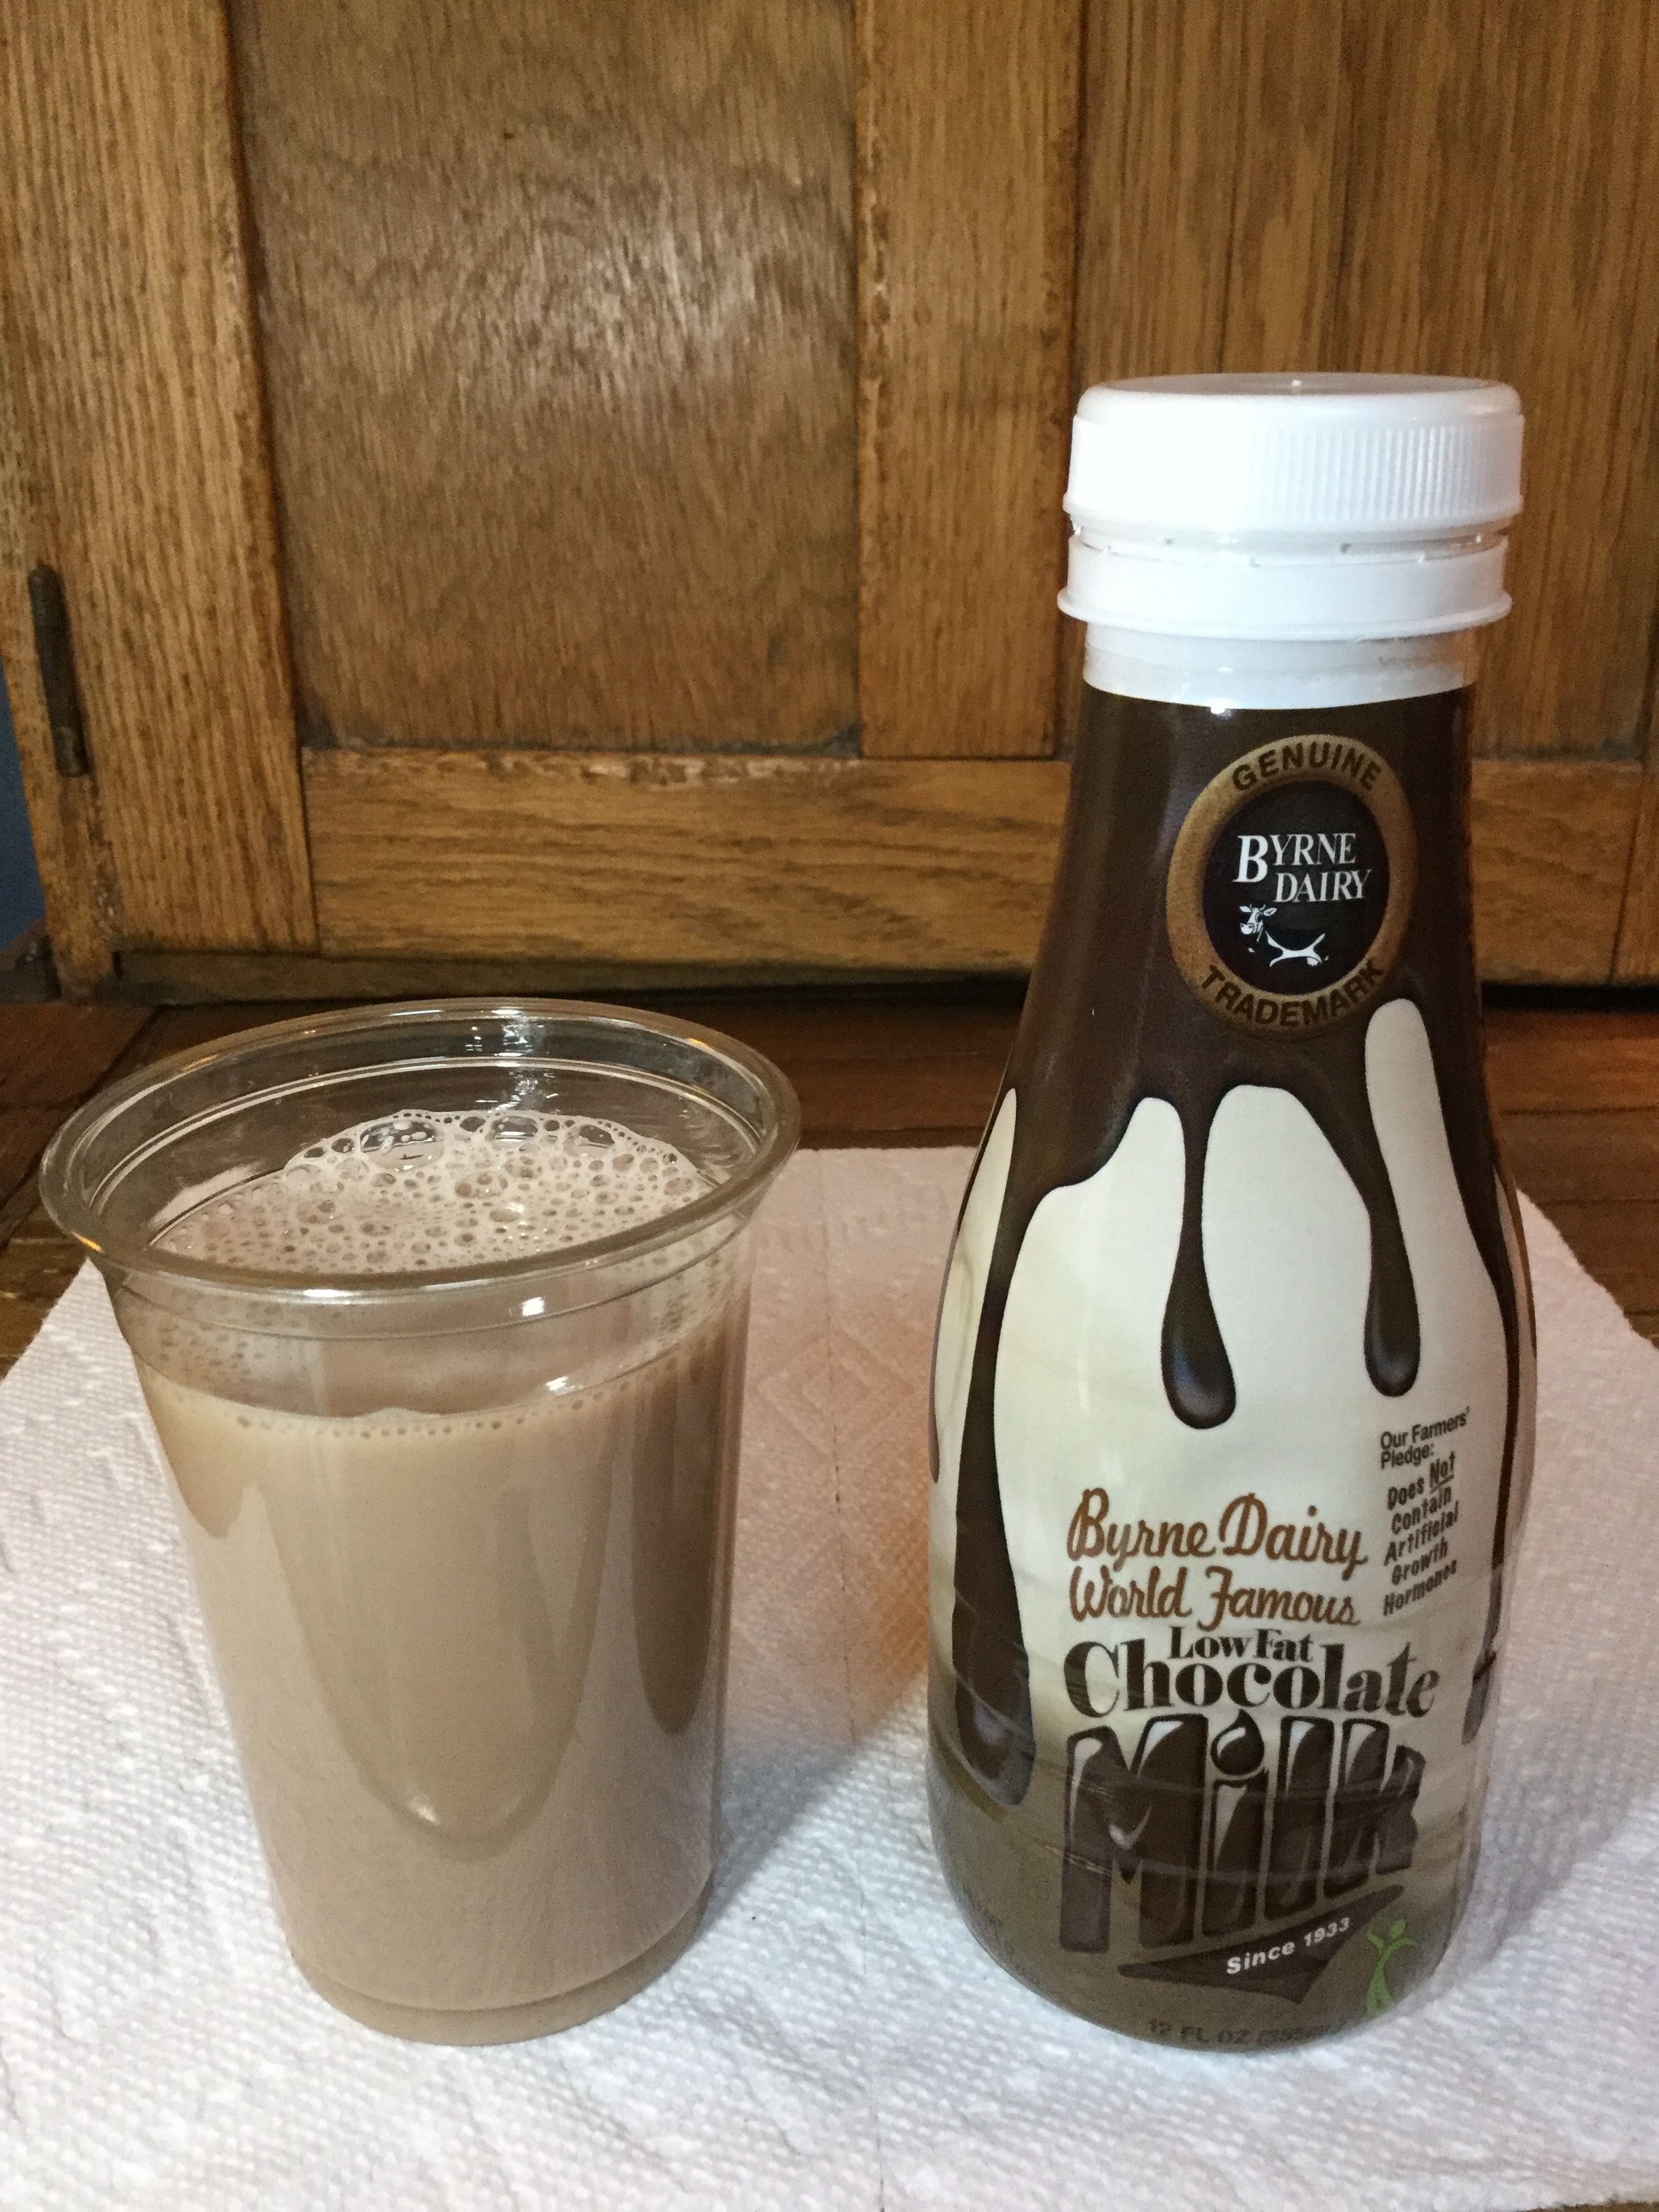 Byrne Dairy World Famous Low Fat Chocolate Milk Cup